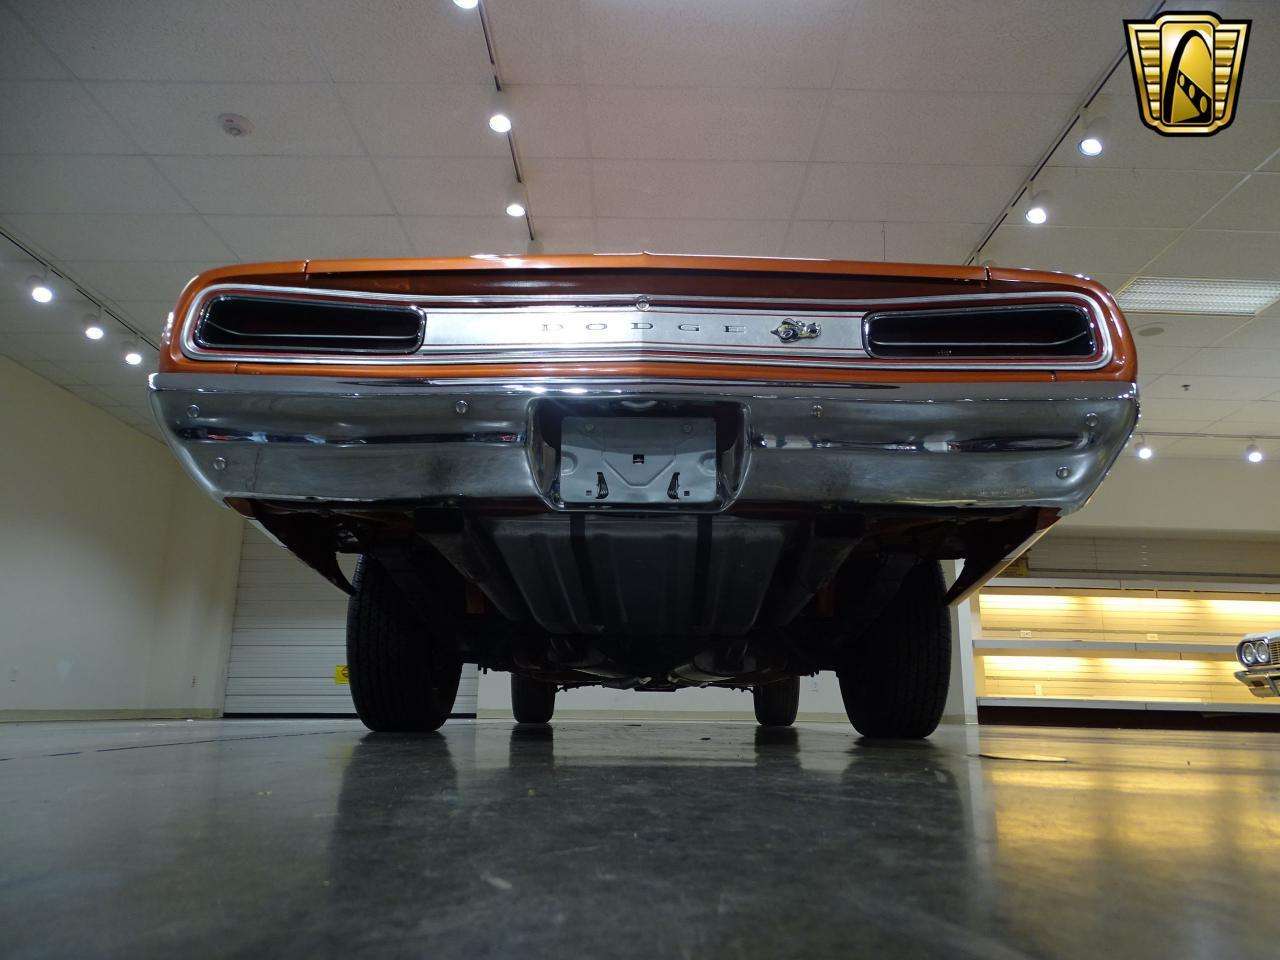 Large Picture of 1970 Dodge Super Bee located in Illinois - $61,000.00 Offered by Gateway Classic Cars - St. Louis - QB4W